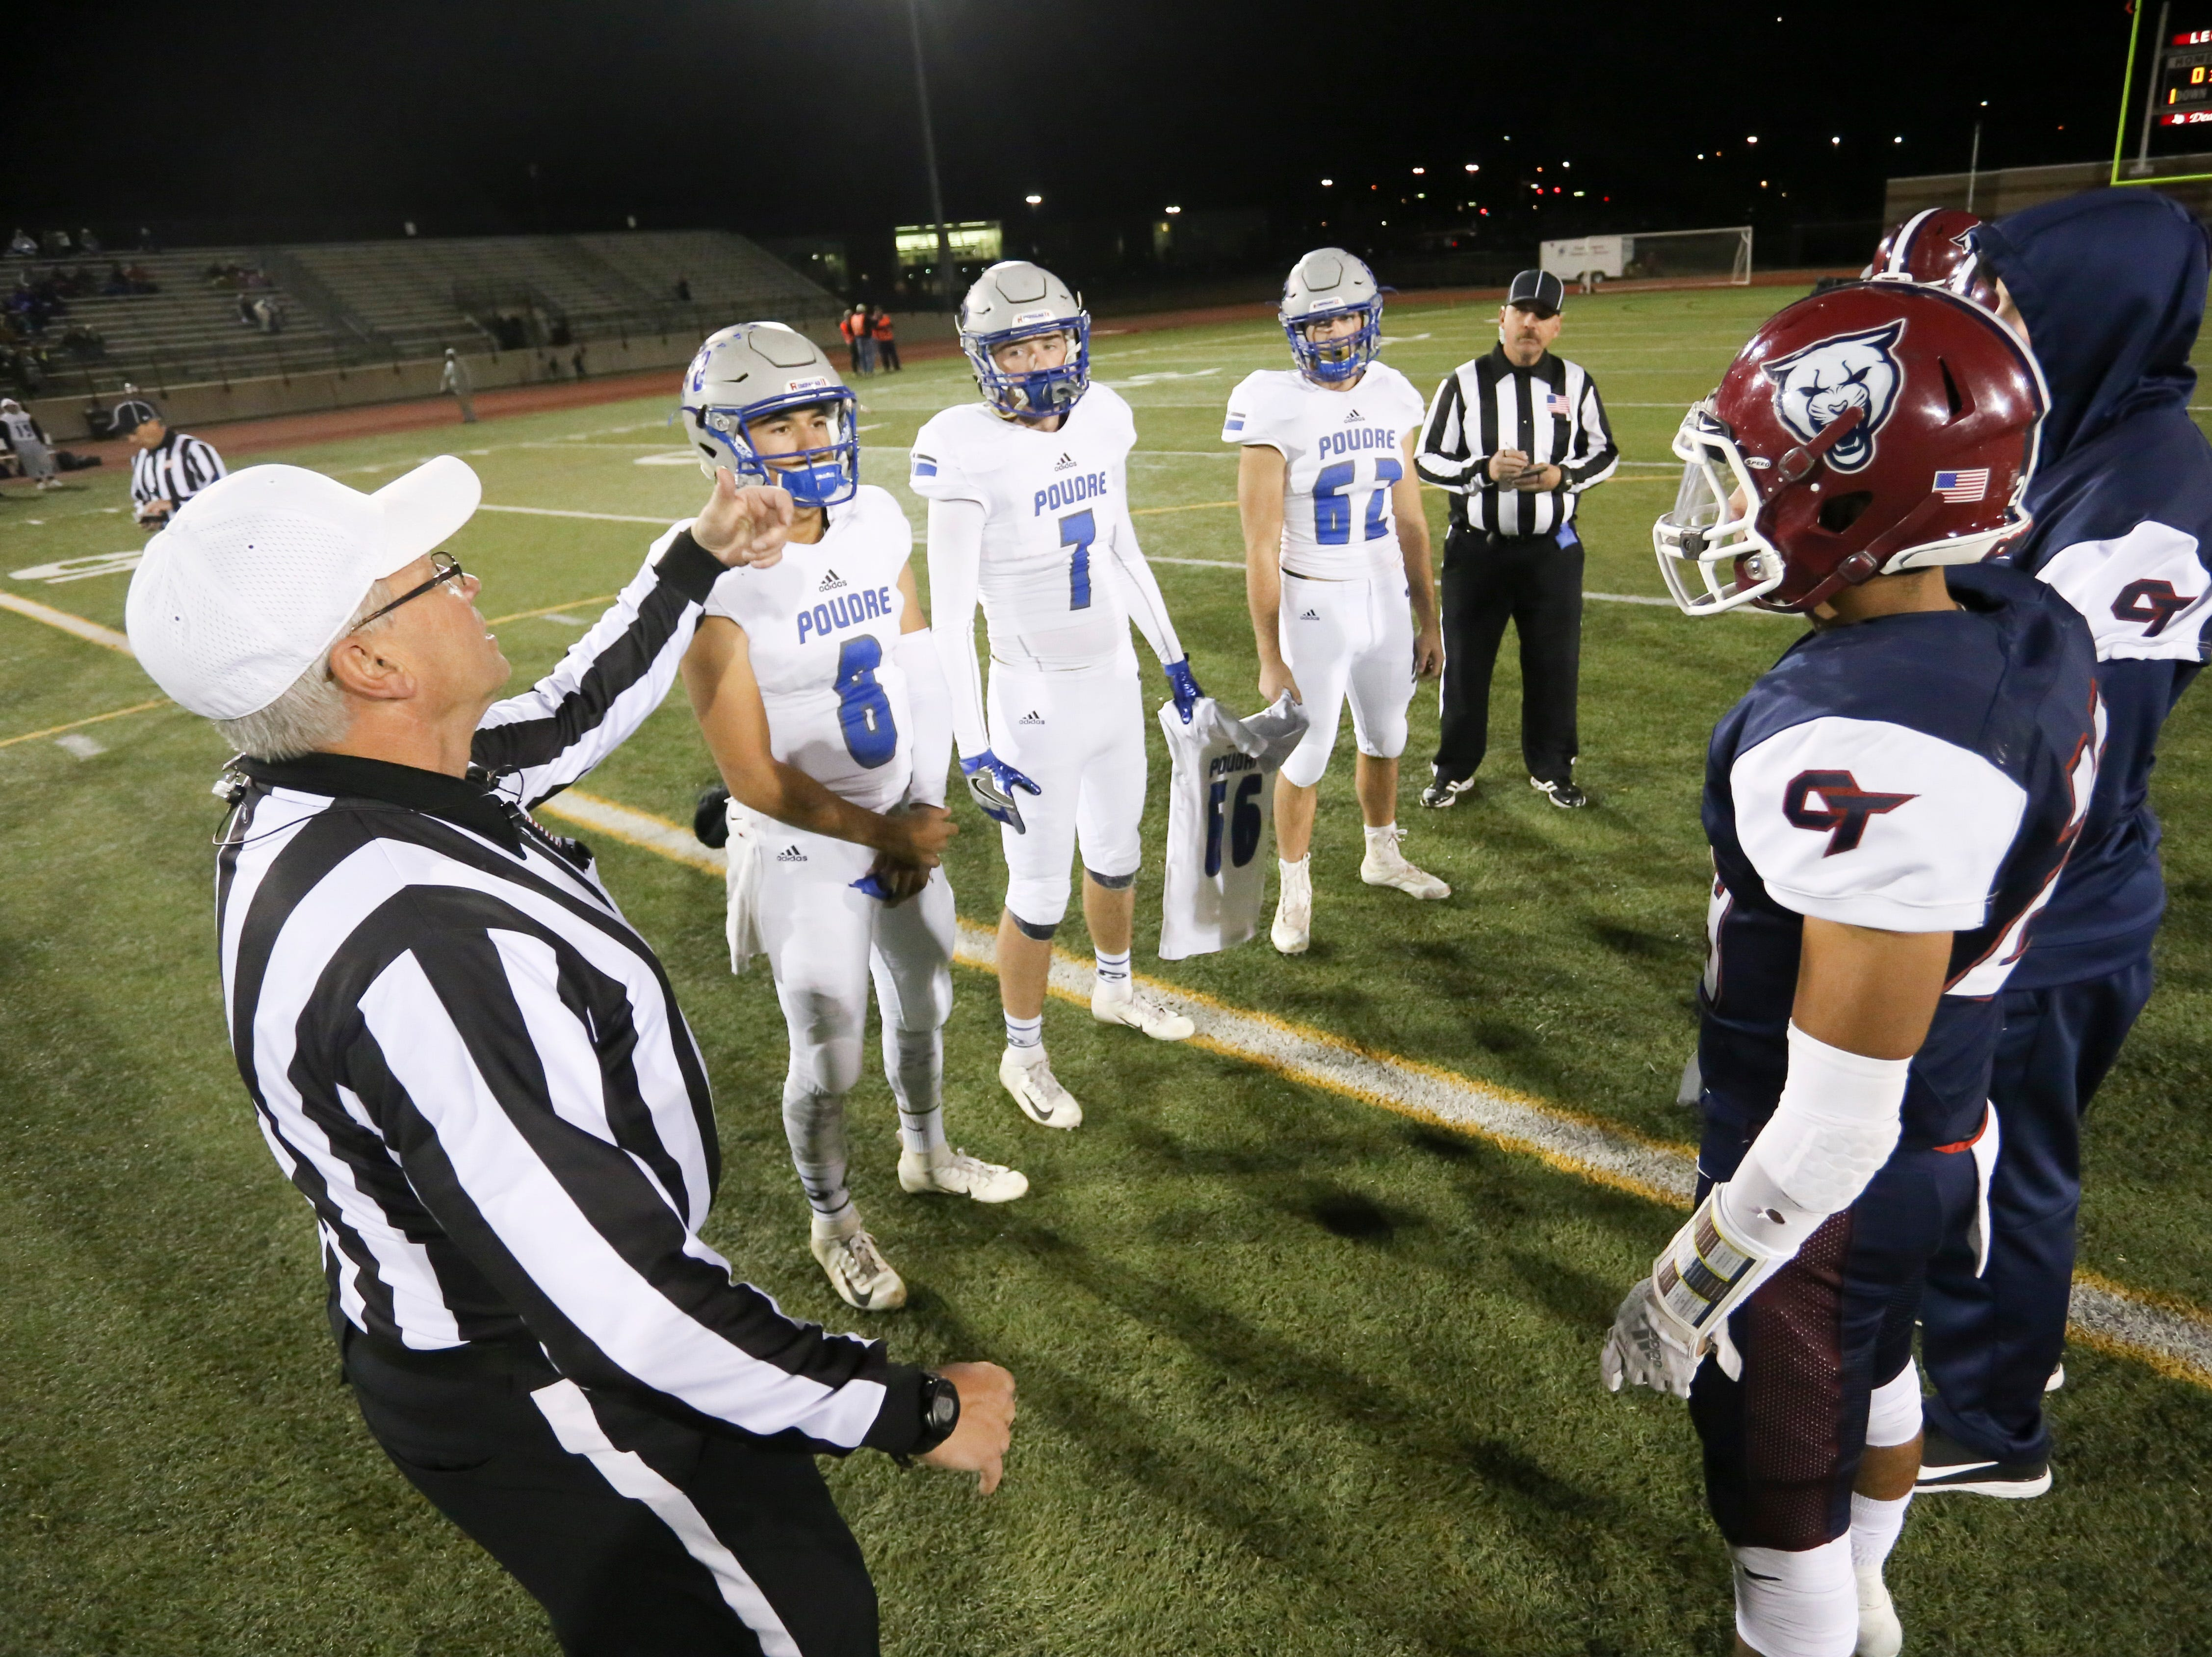 Captains for Poudre High School and Cherokee Trail High School gather for the cointoss before a playoff opening round game on Friday evening in Aurora.